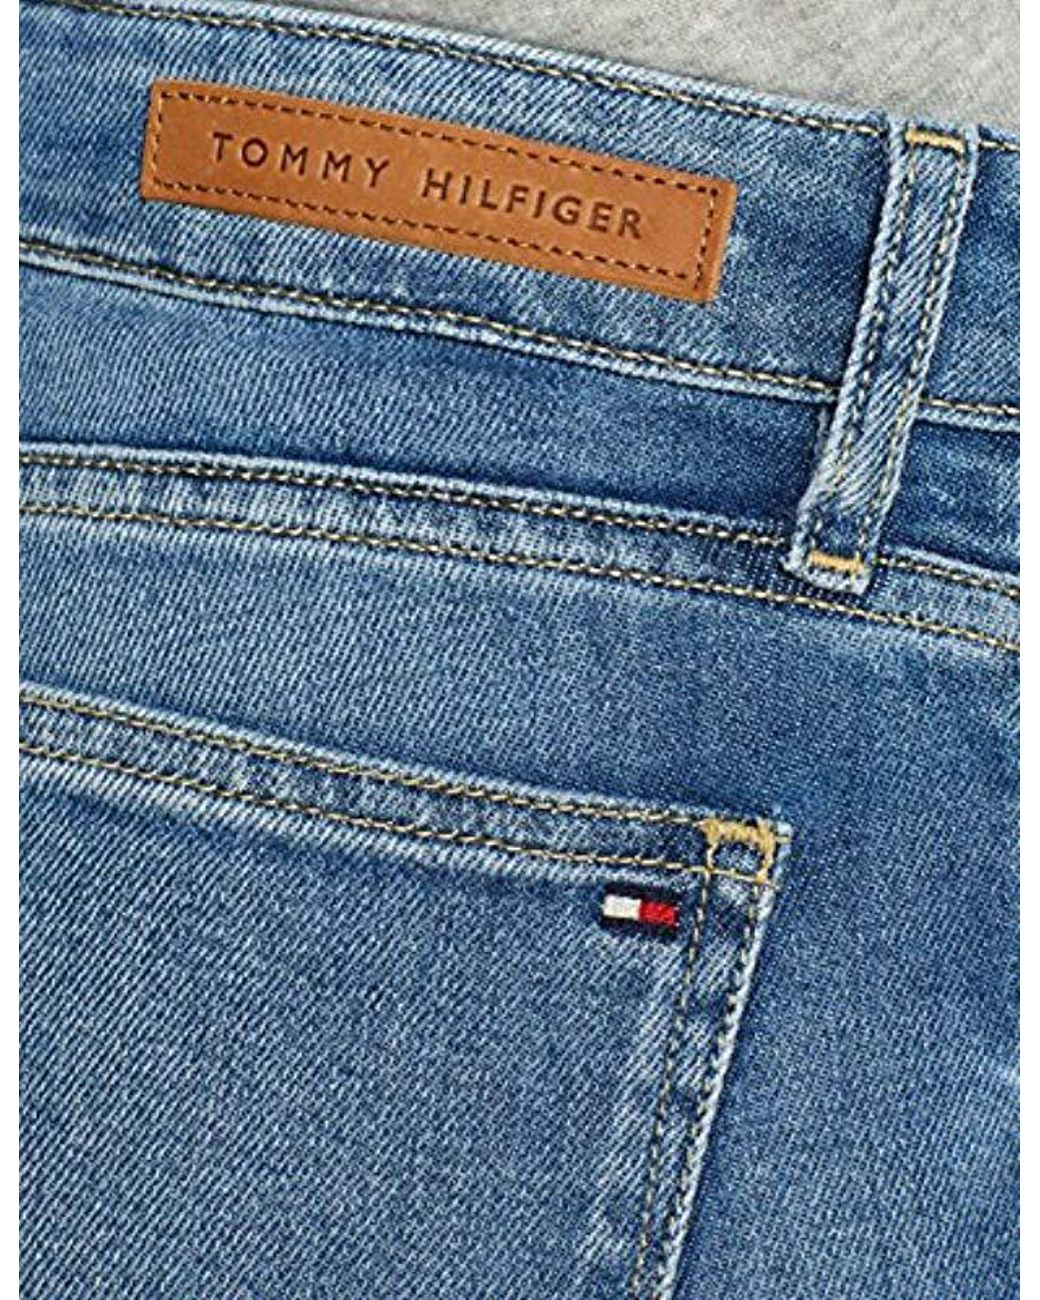 29ddbc45 Tommy Hilfiger Venice Rw Rolled Up Avaline Skinny Jeans in Blue - Lyst